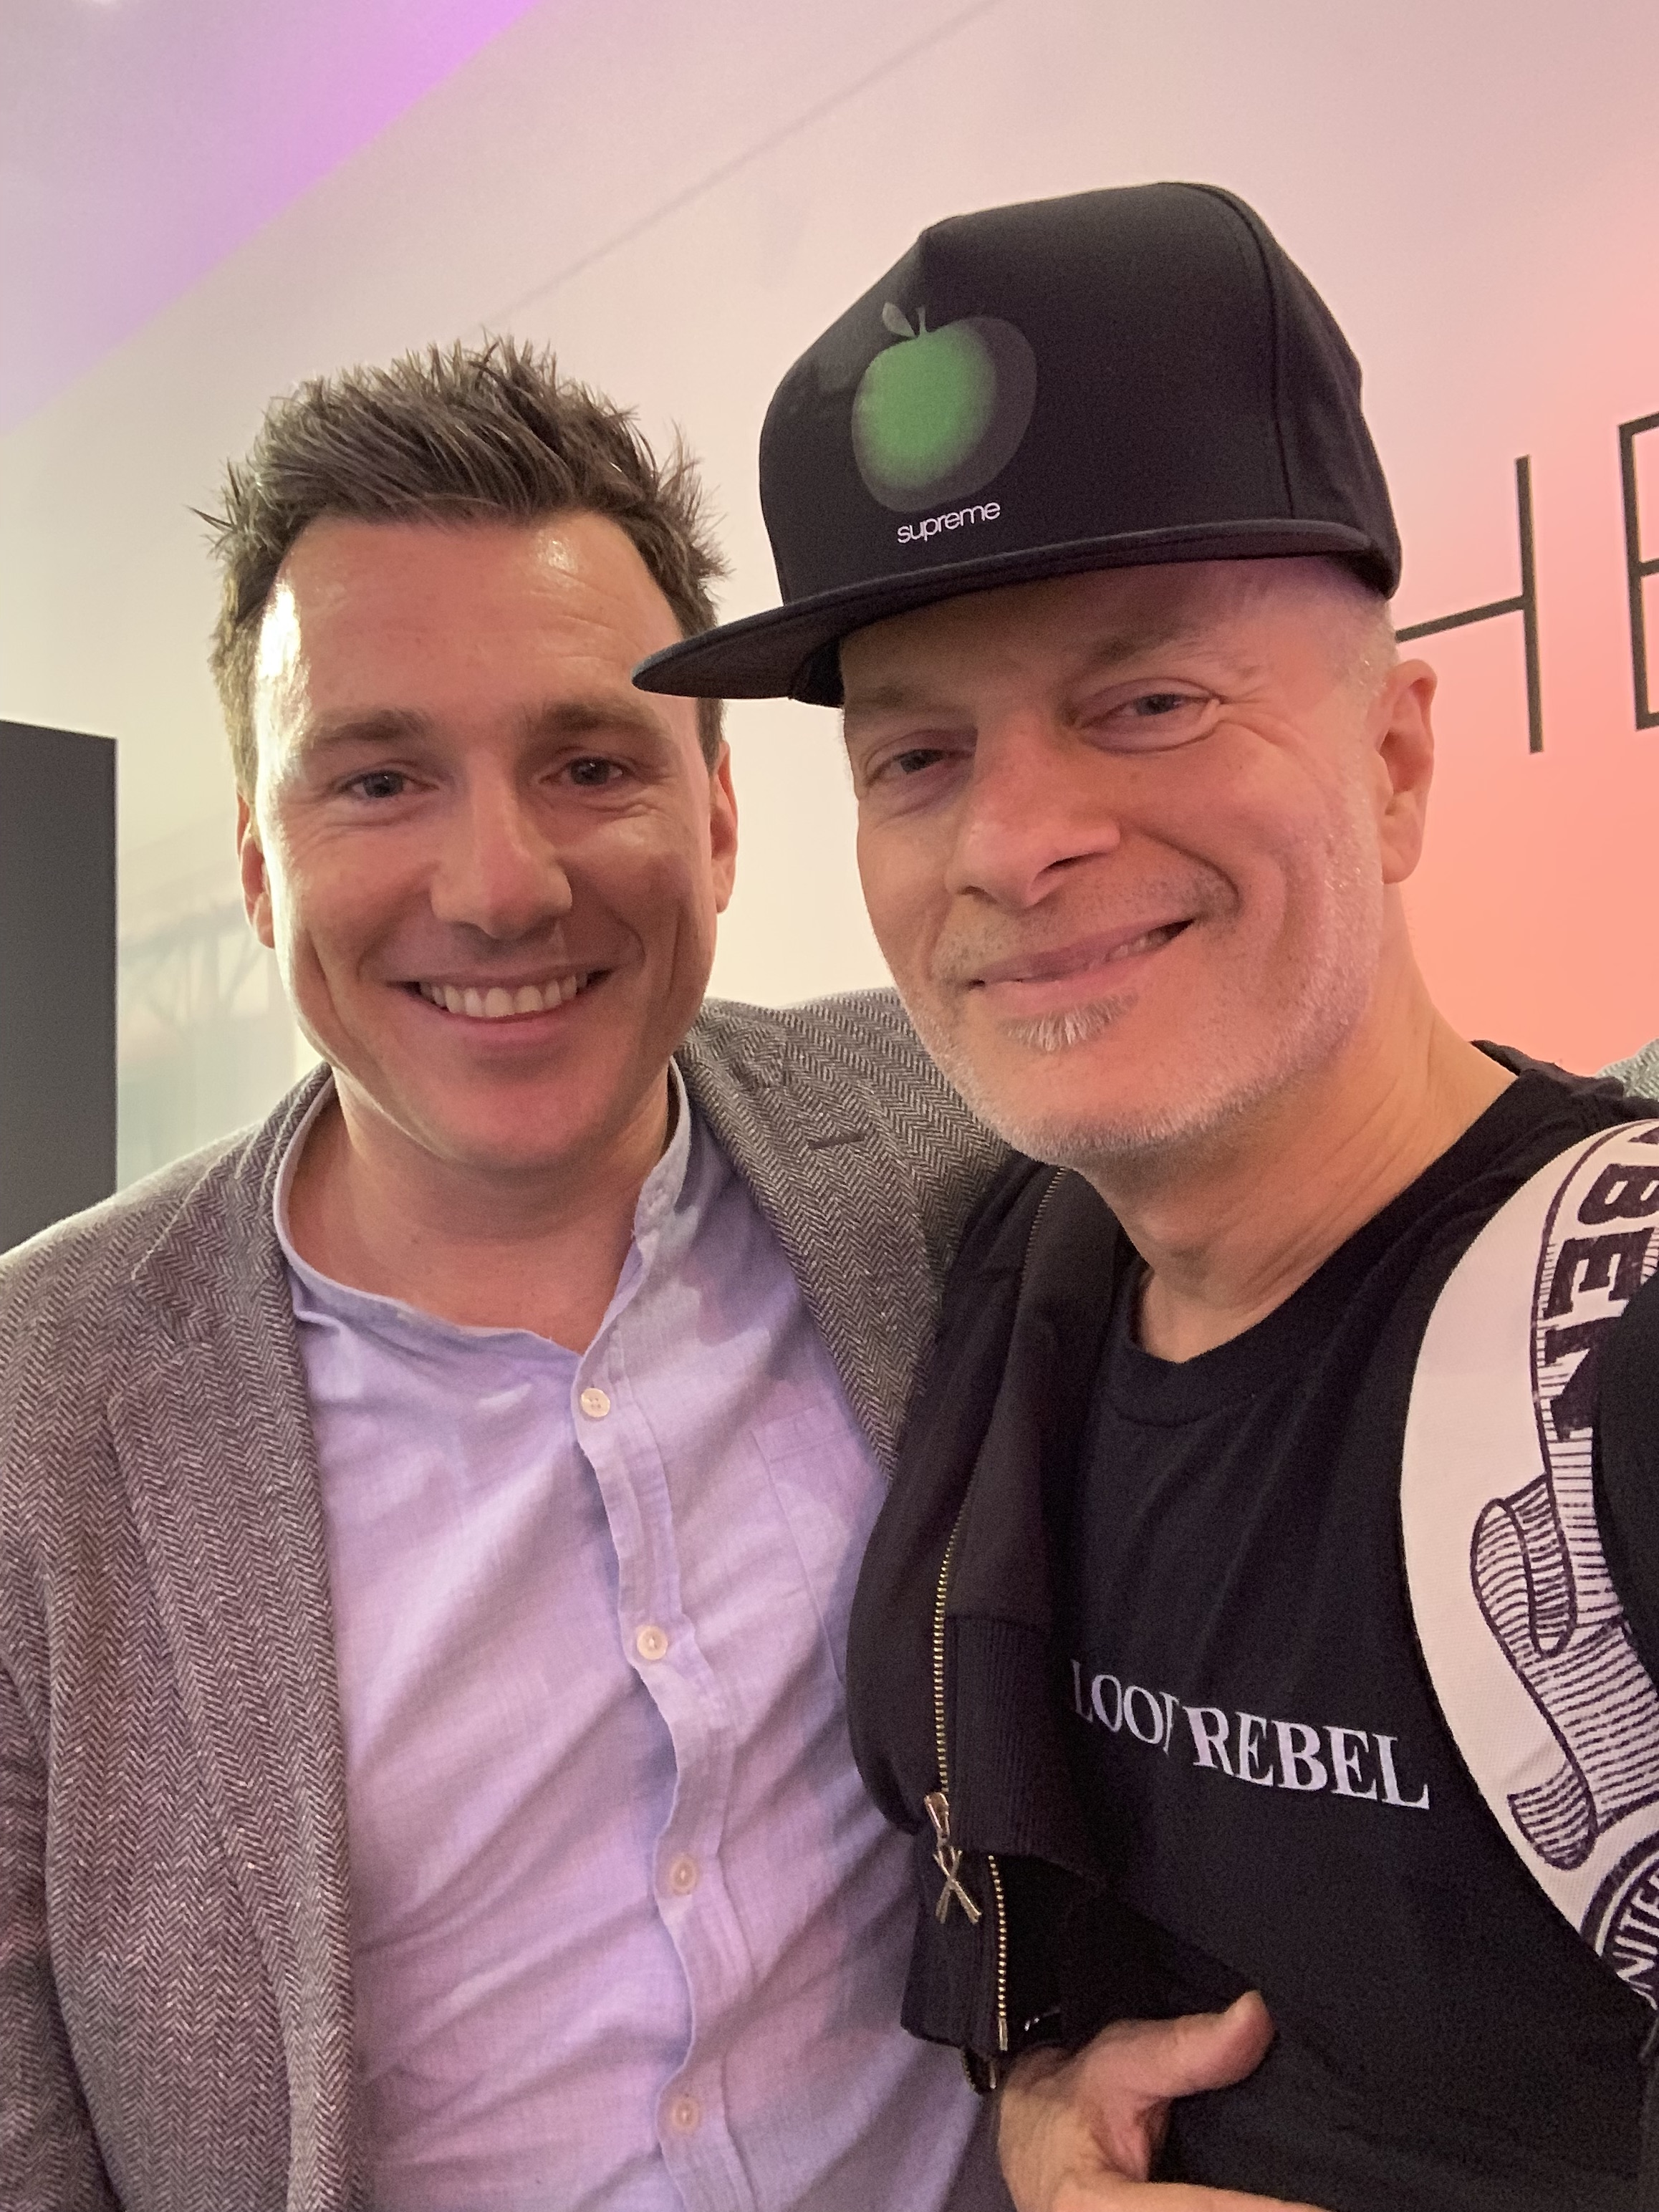 Inkey List co-founder Mark Curry and me at the brand's SOHO pop-up shop!